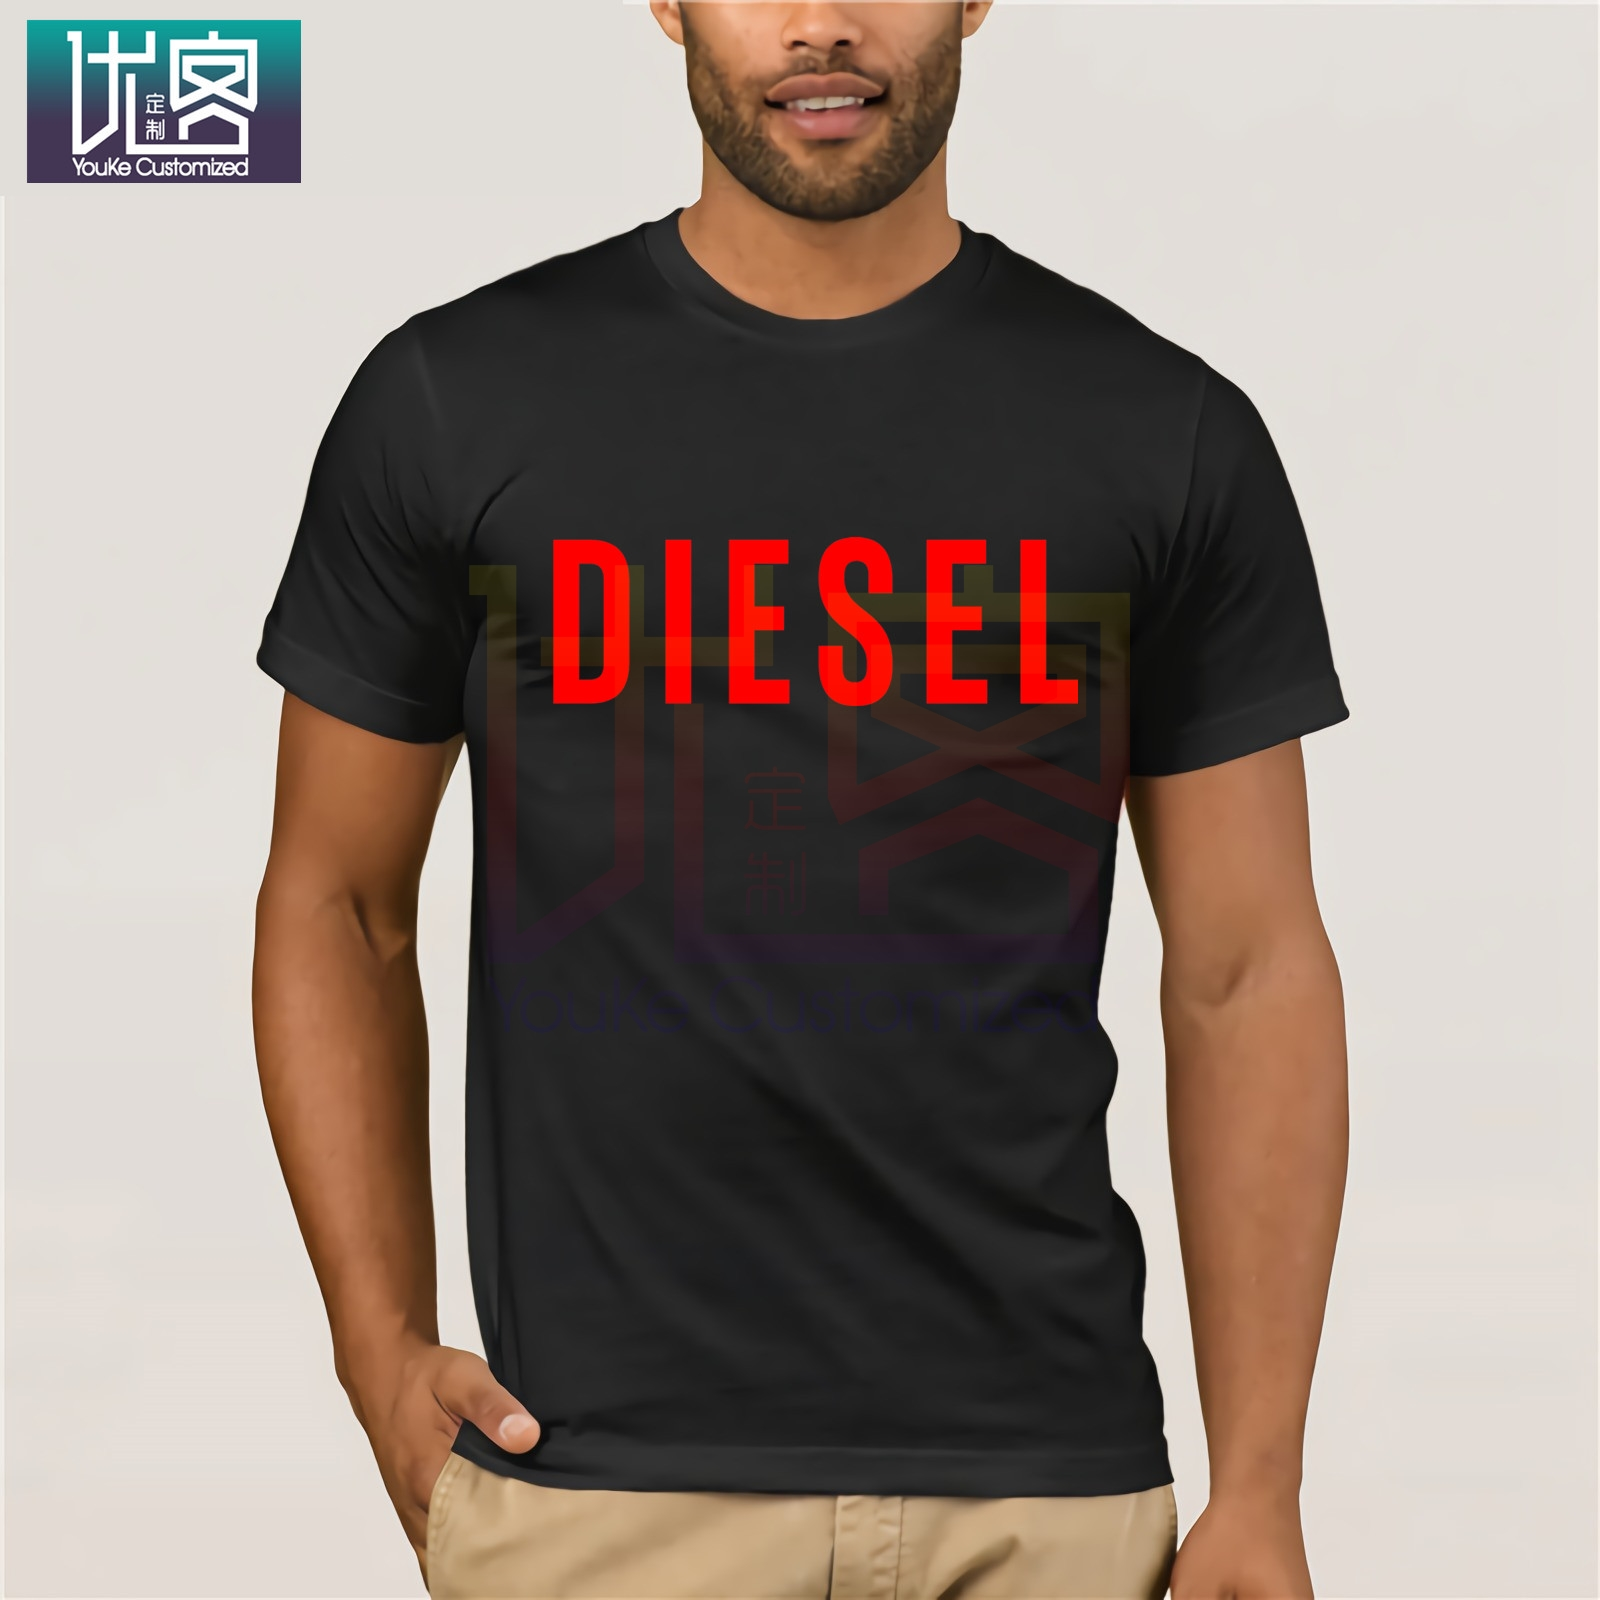 Diesel Power Shirts Clothes Popular T-shirt Crewneck 100% Cotton Tees Tops Summer Tees Cotton O Neck Herre T-Shirt For Men Tops